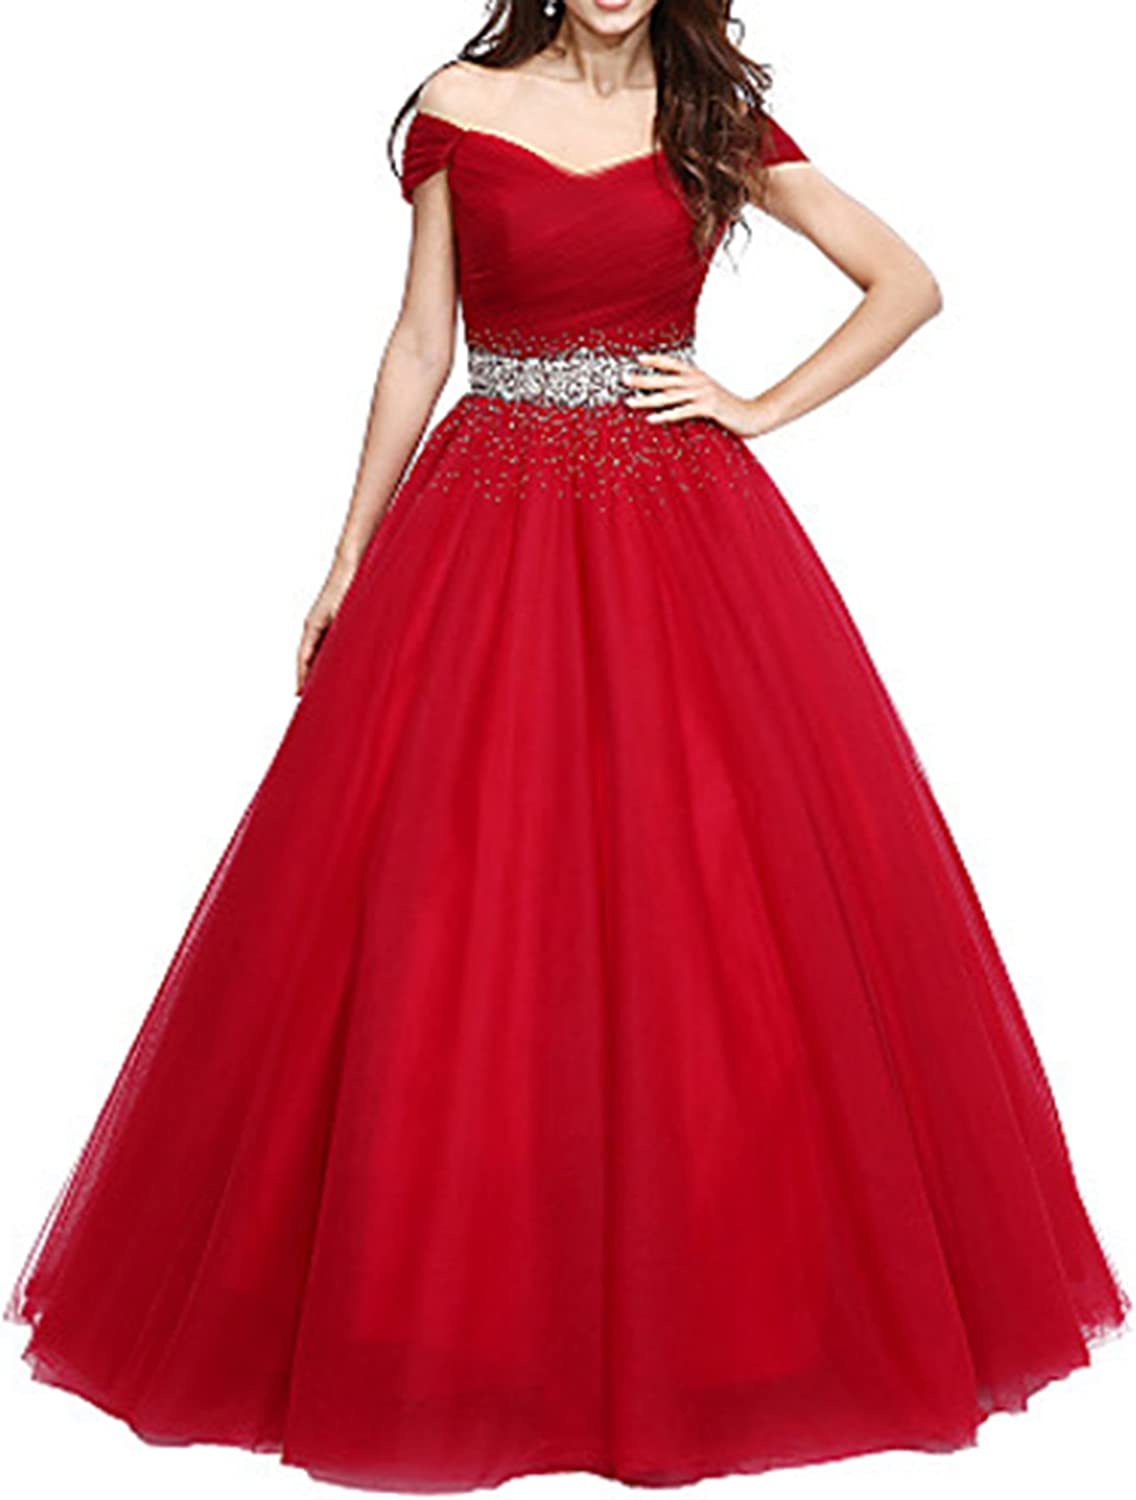 Udresses Womens Off Shoulder Prom Dress 2018 Long Pageant Ball Gown Formal VN40